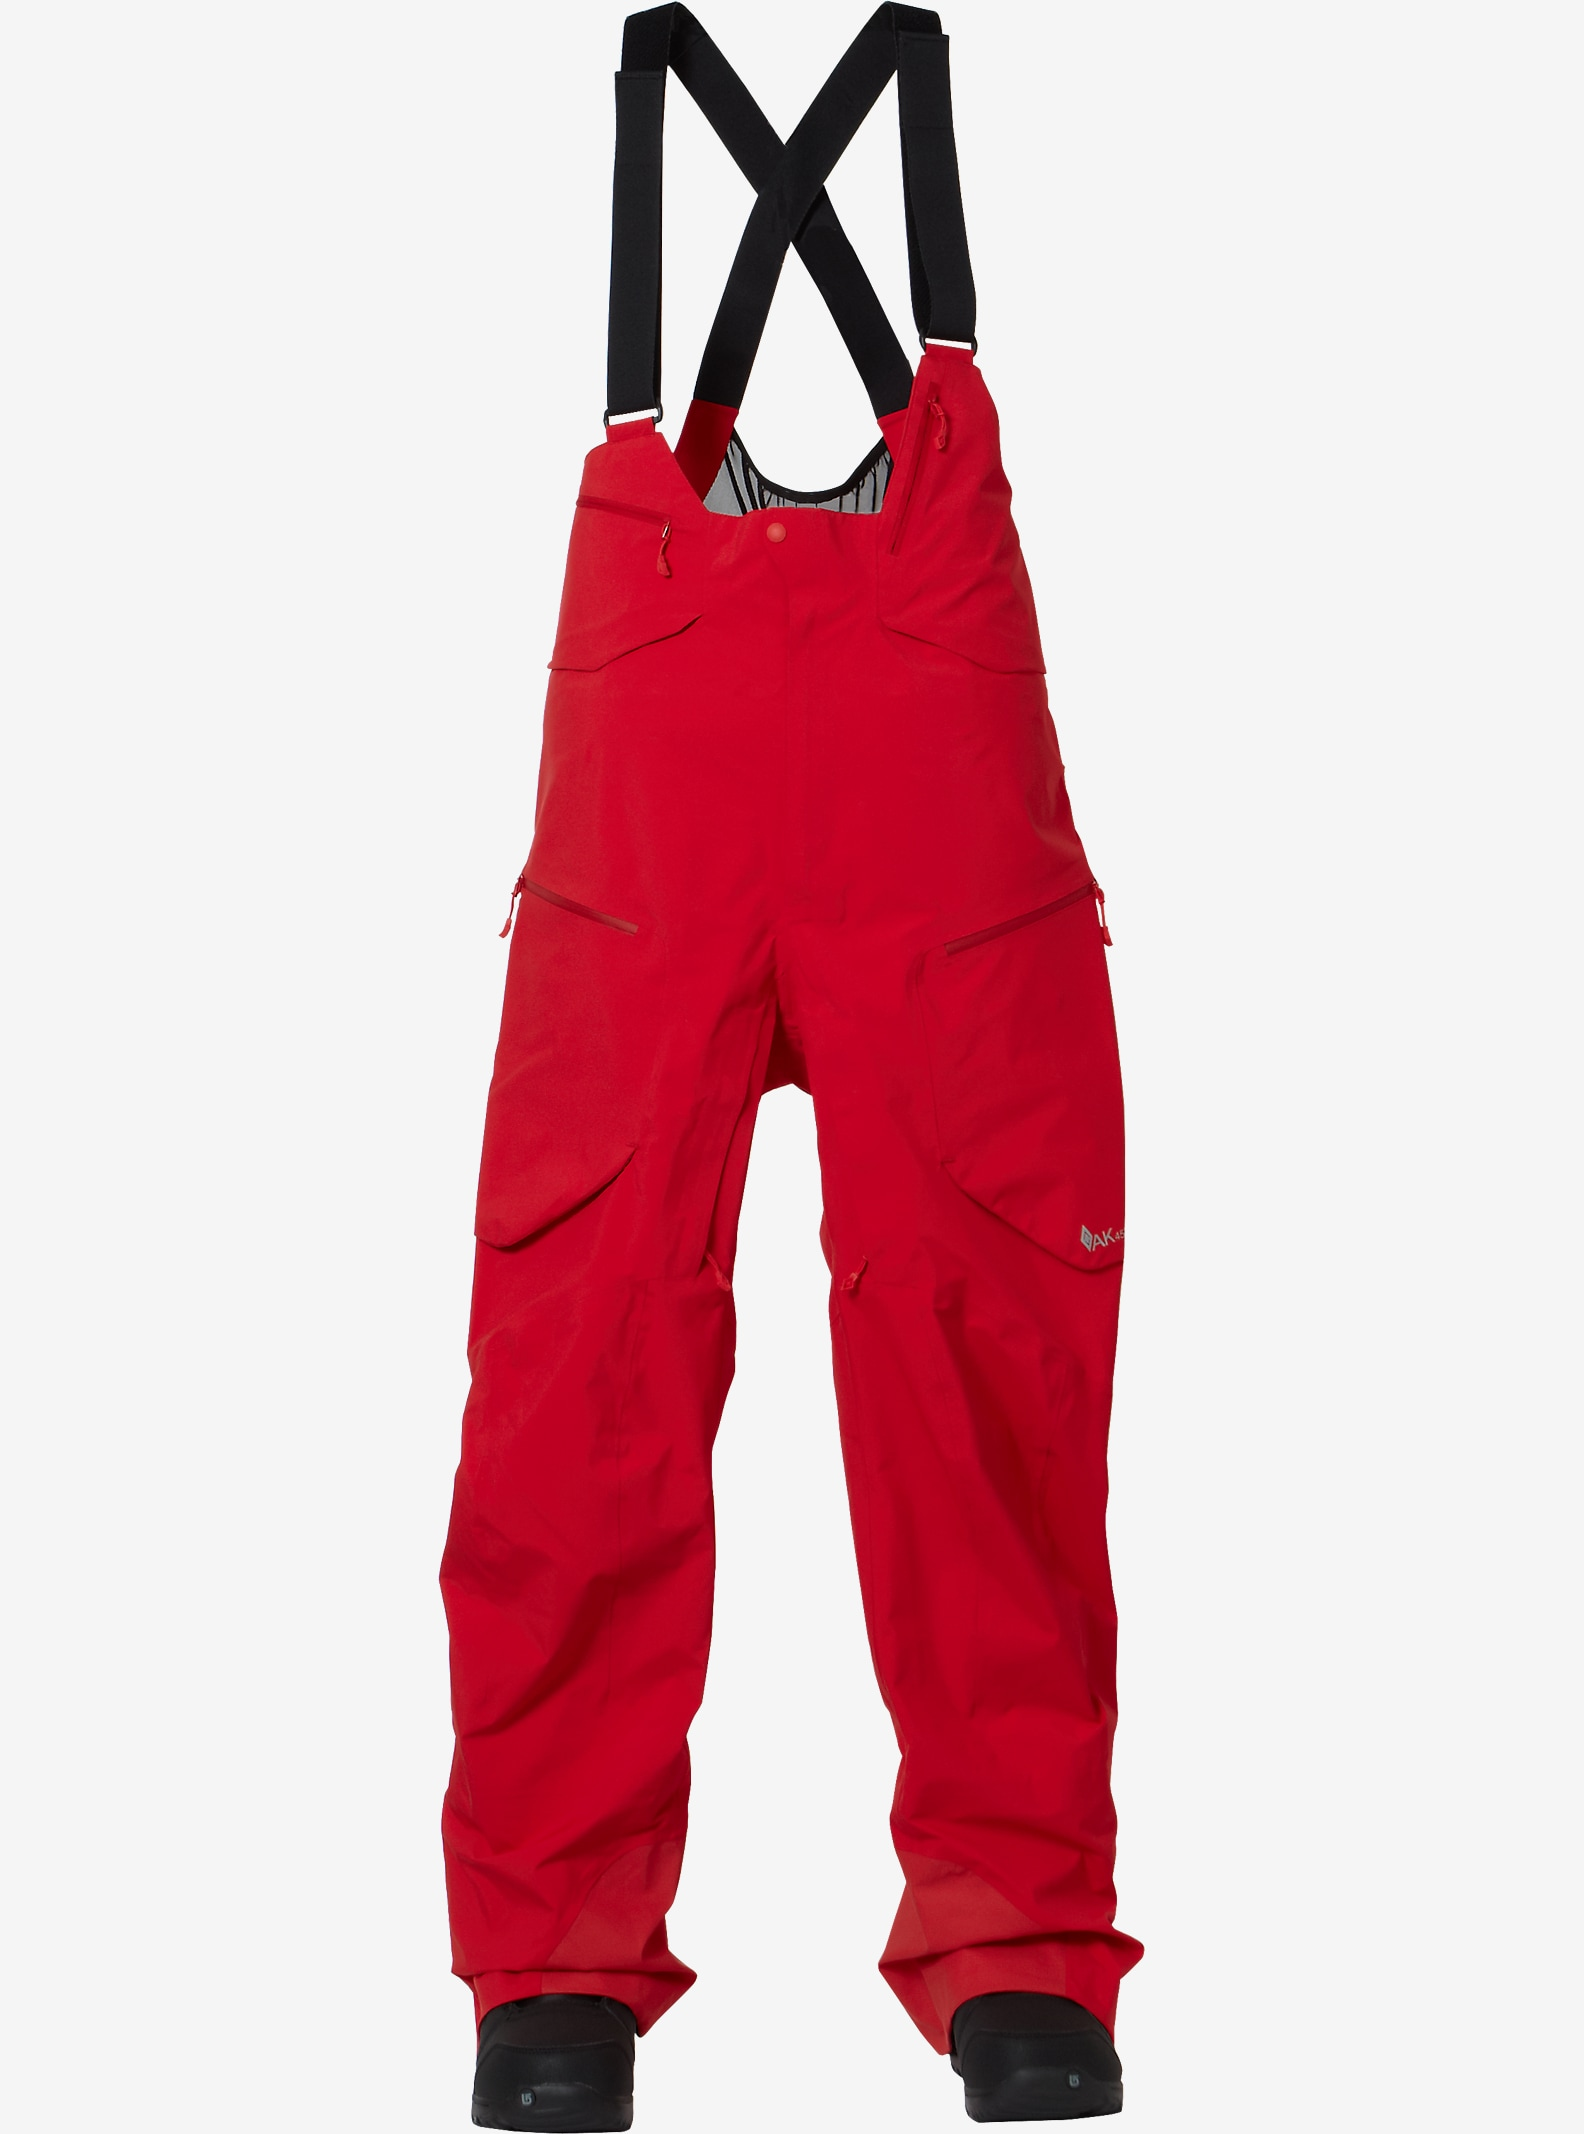 Burton AK457 Hi-Top Pant shown in Red